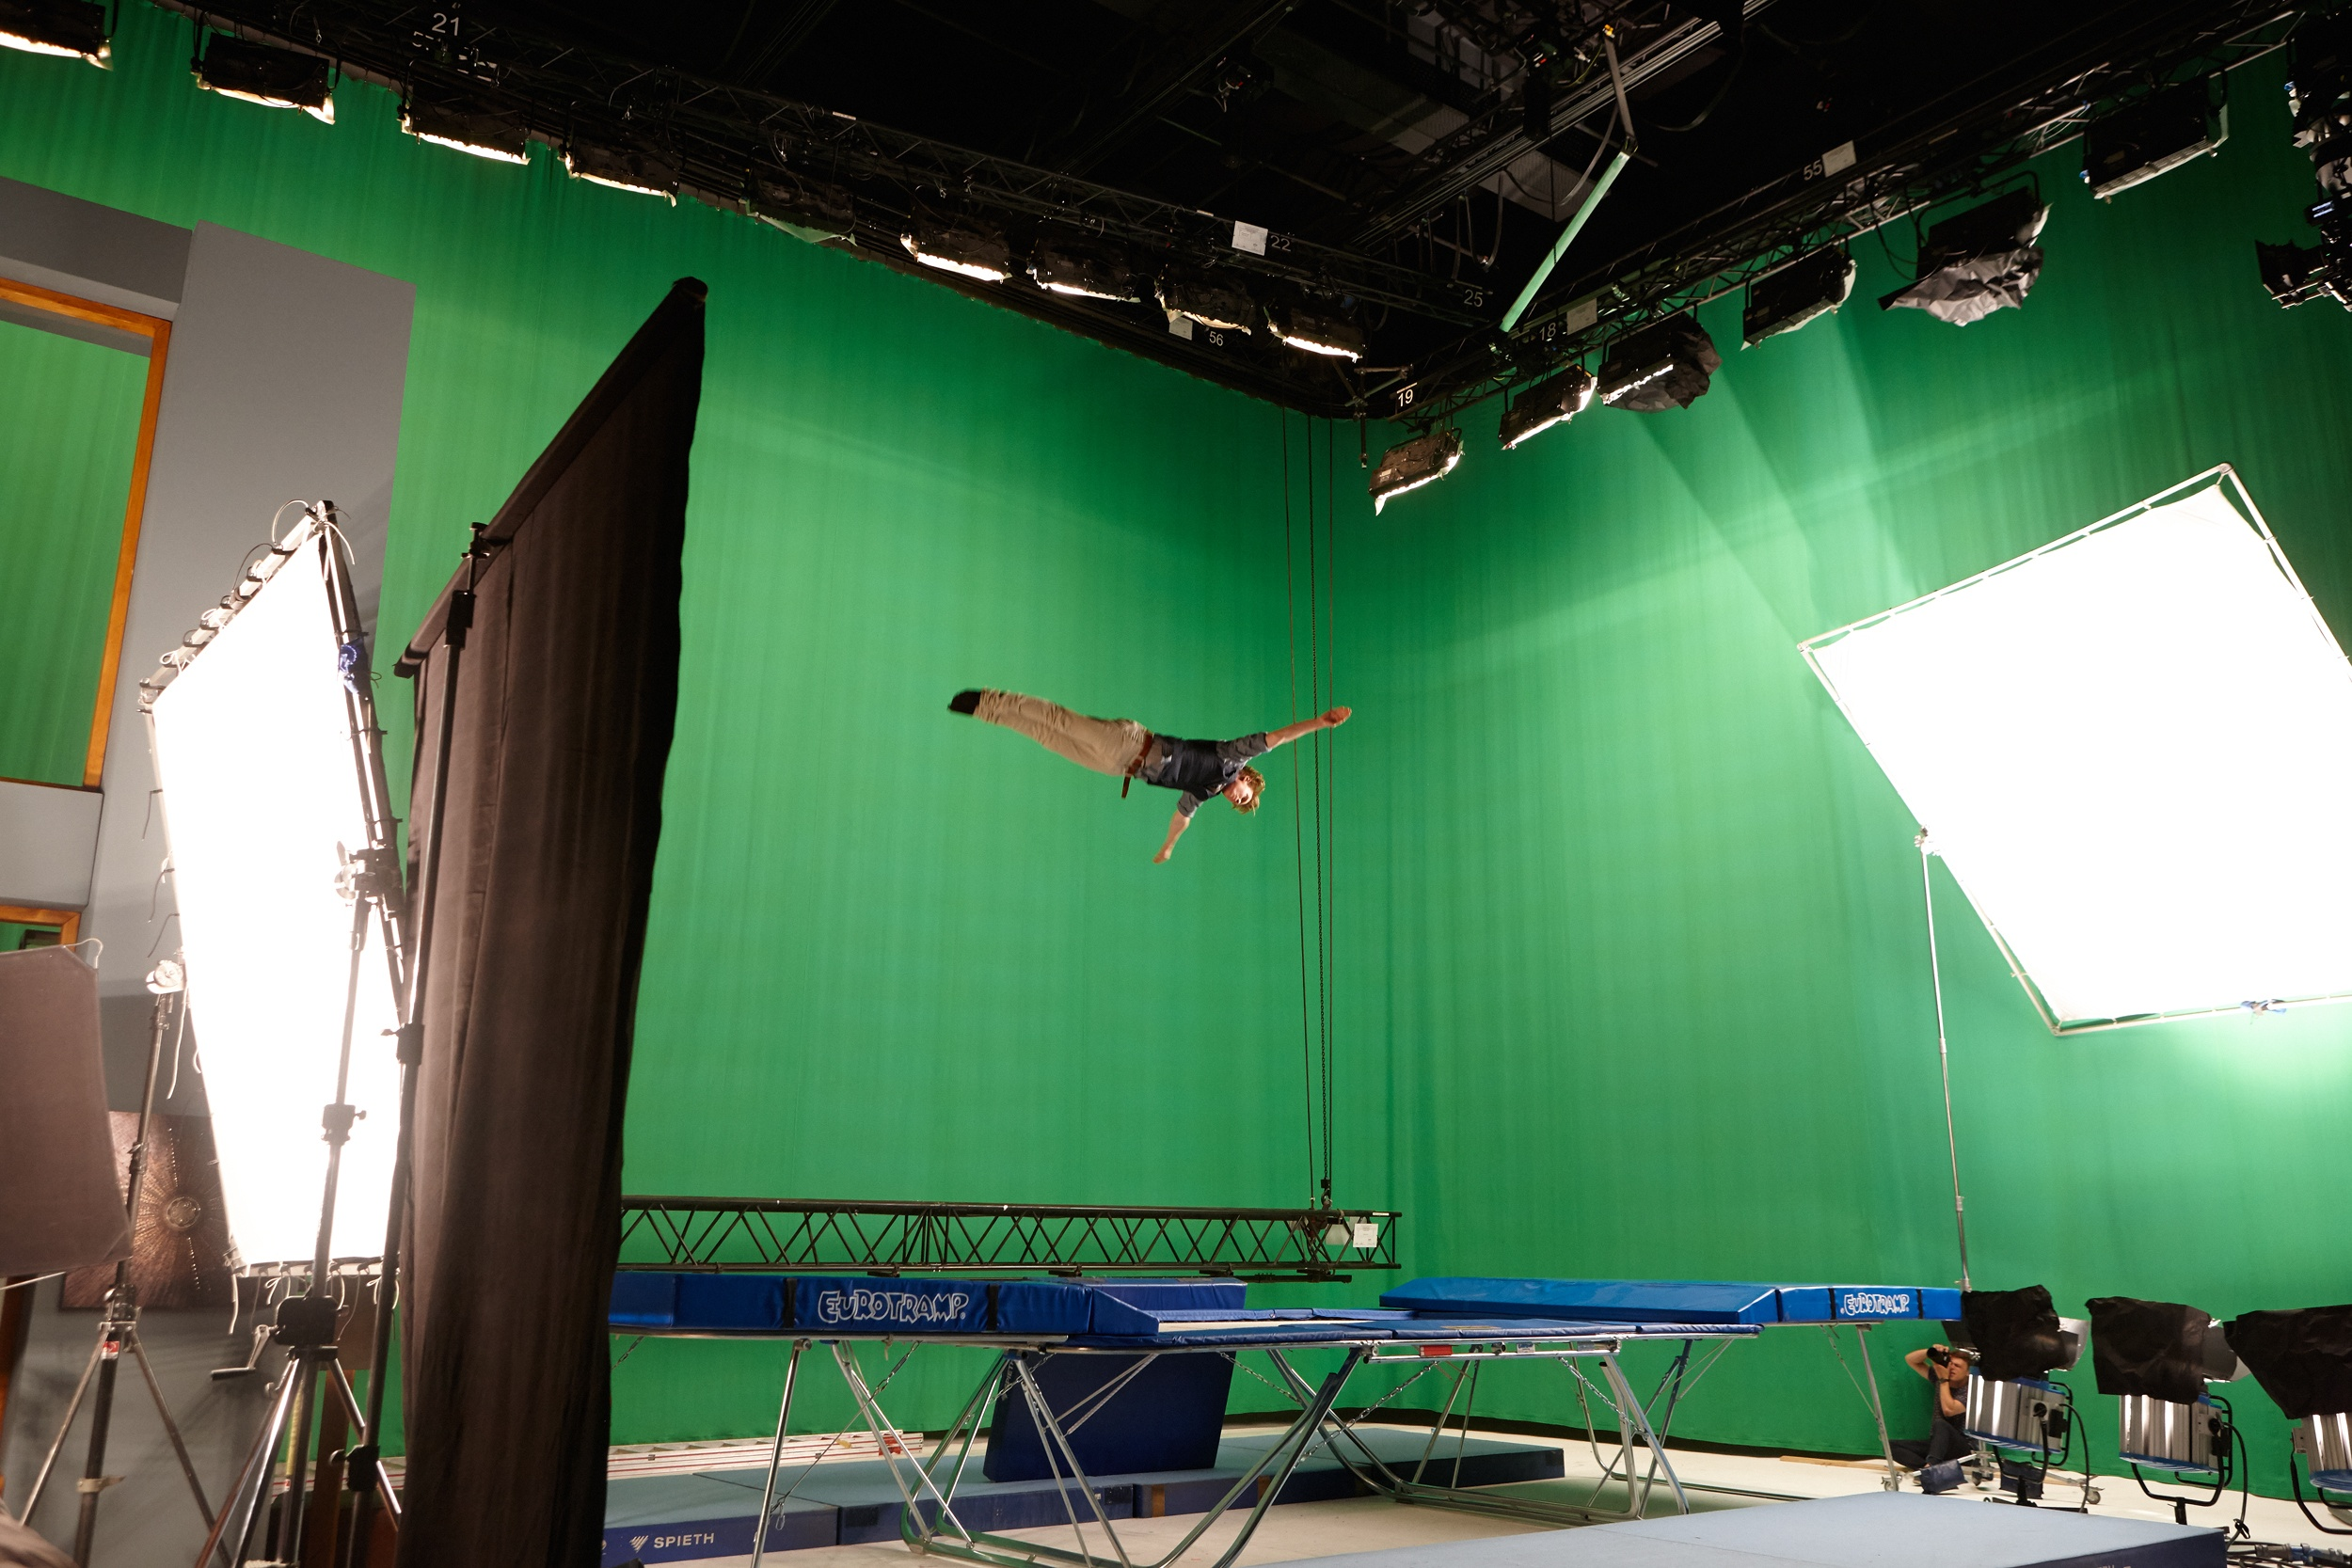 TV-Spot-Making-Of_055.jpg